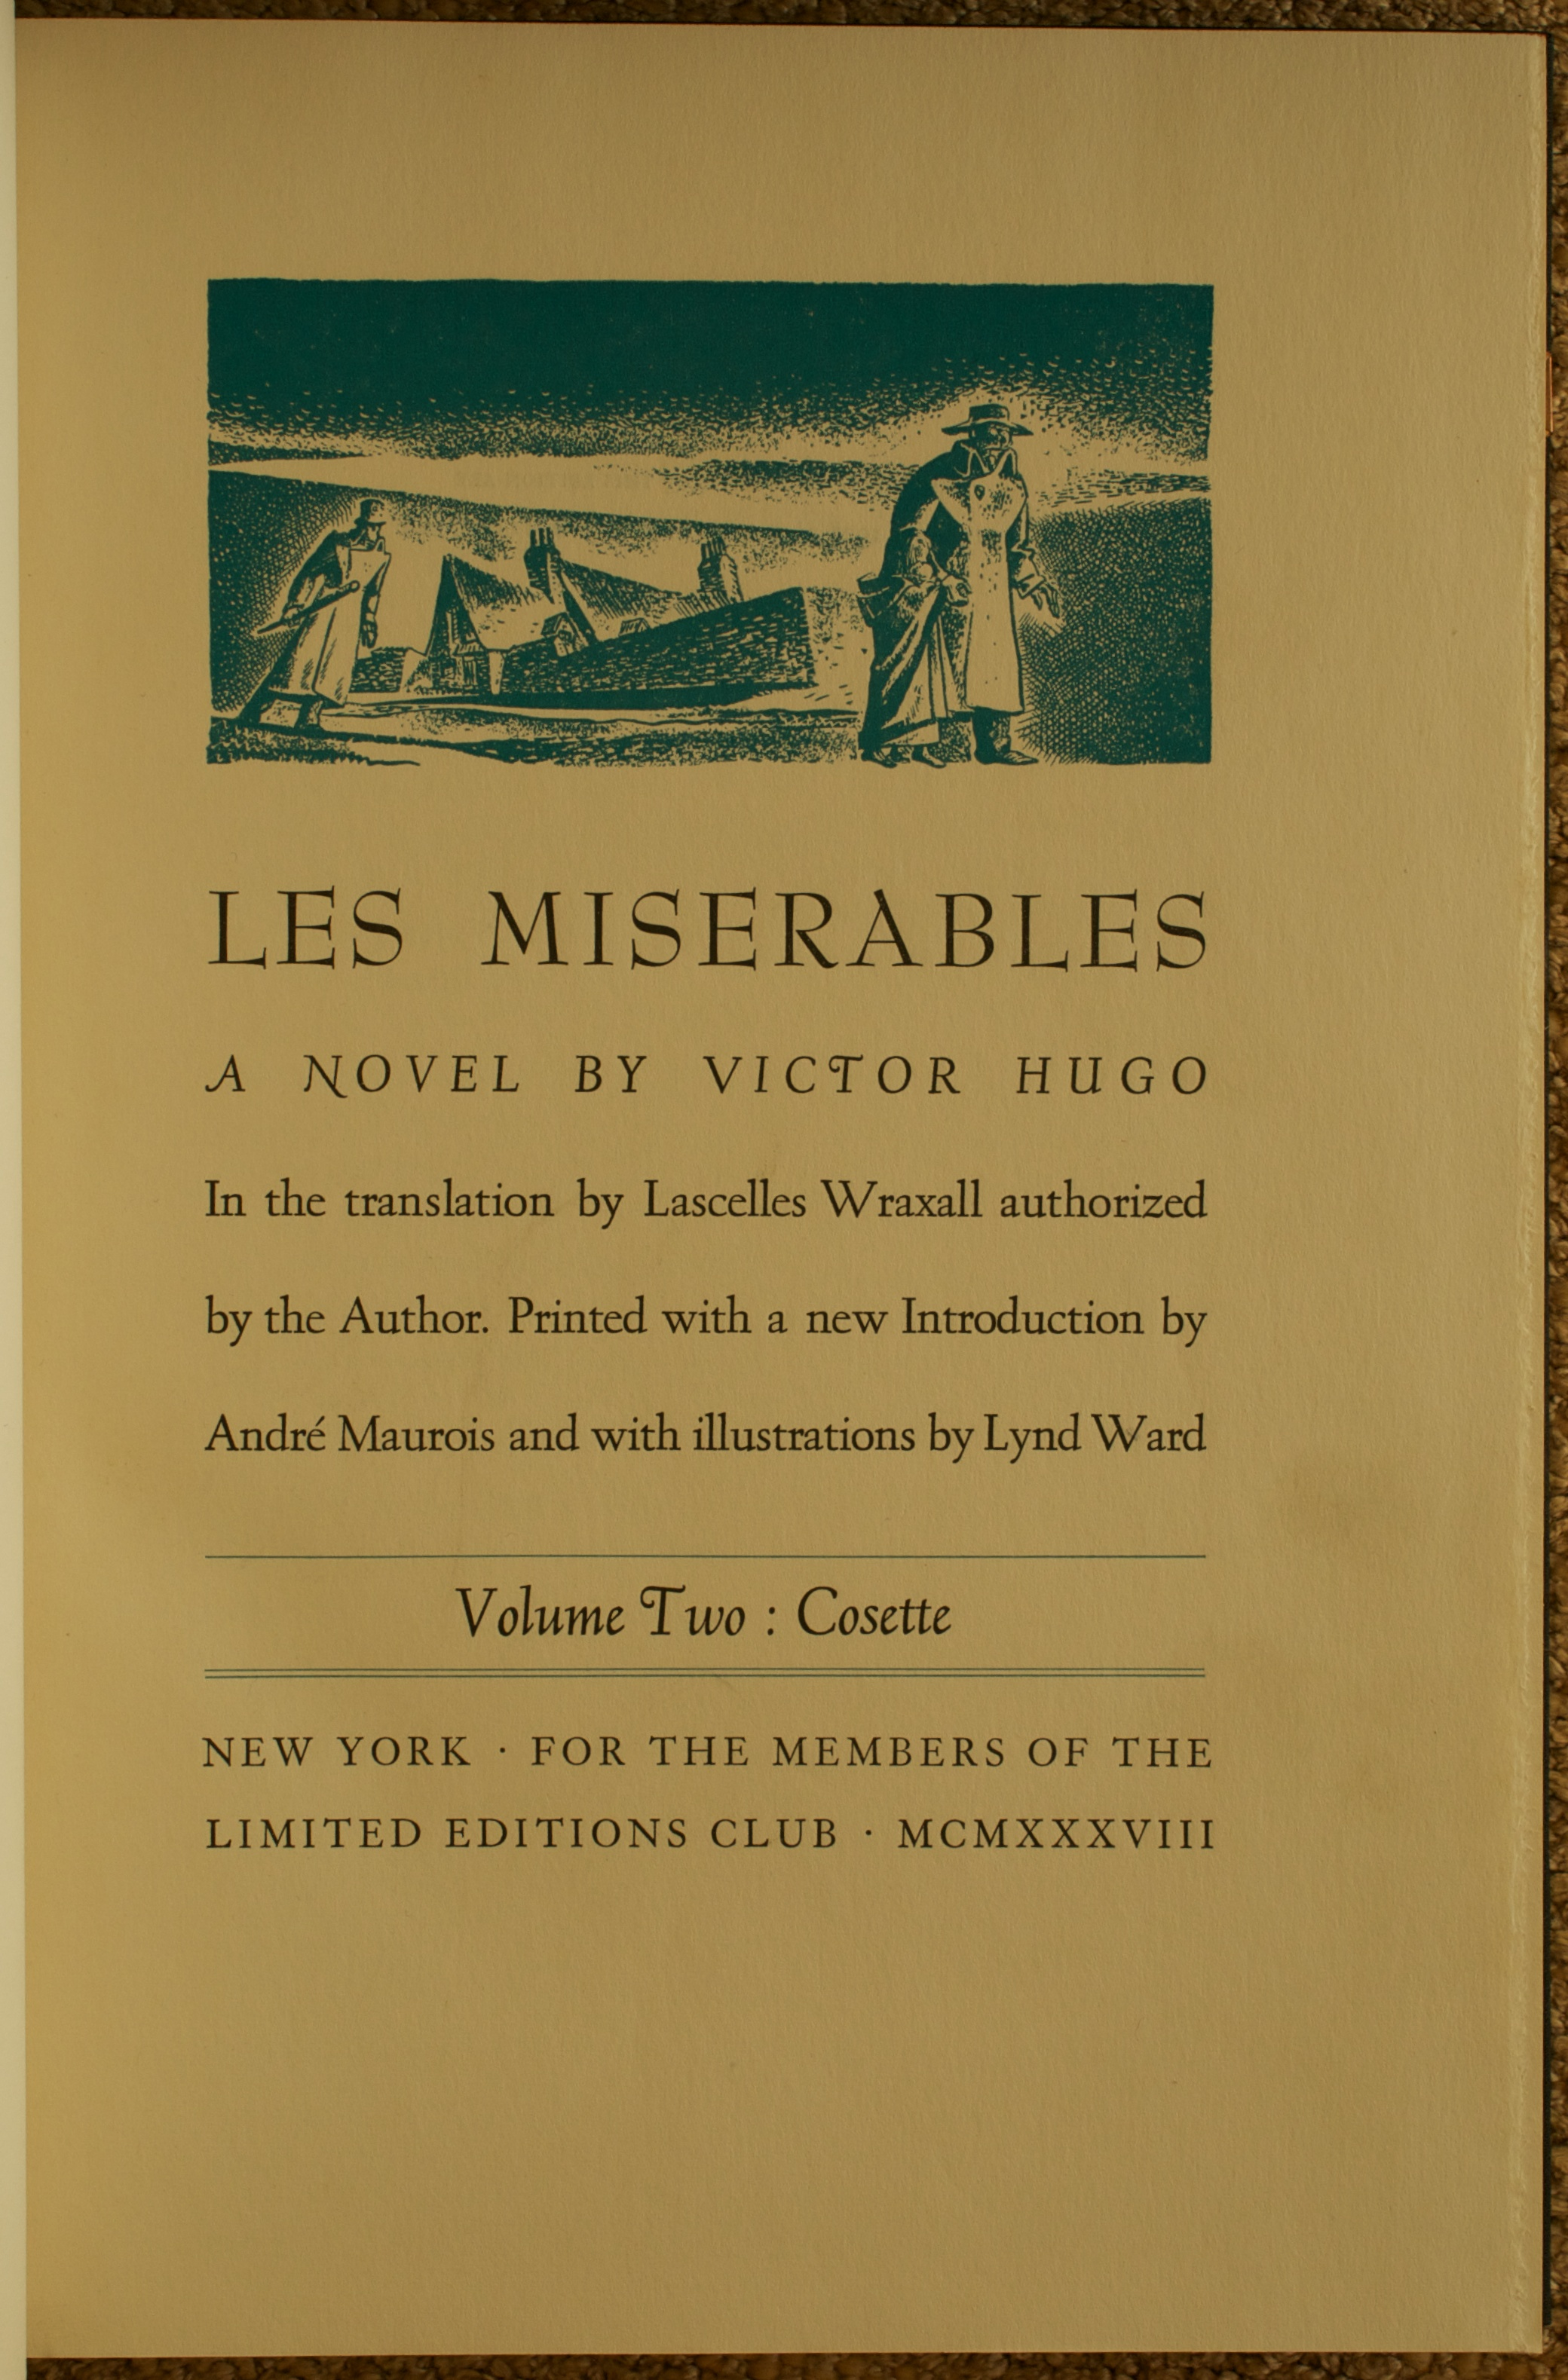 les miserables movie vs book essay Les miserables essaysles miserables is an epic tale of the very poor in spirit and body who suffer throughout their lives set in 19th century france, it tells the.